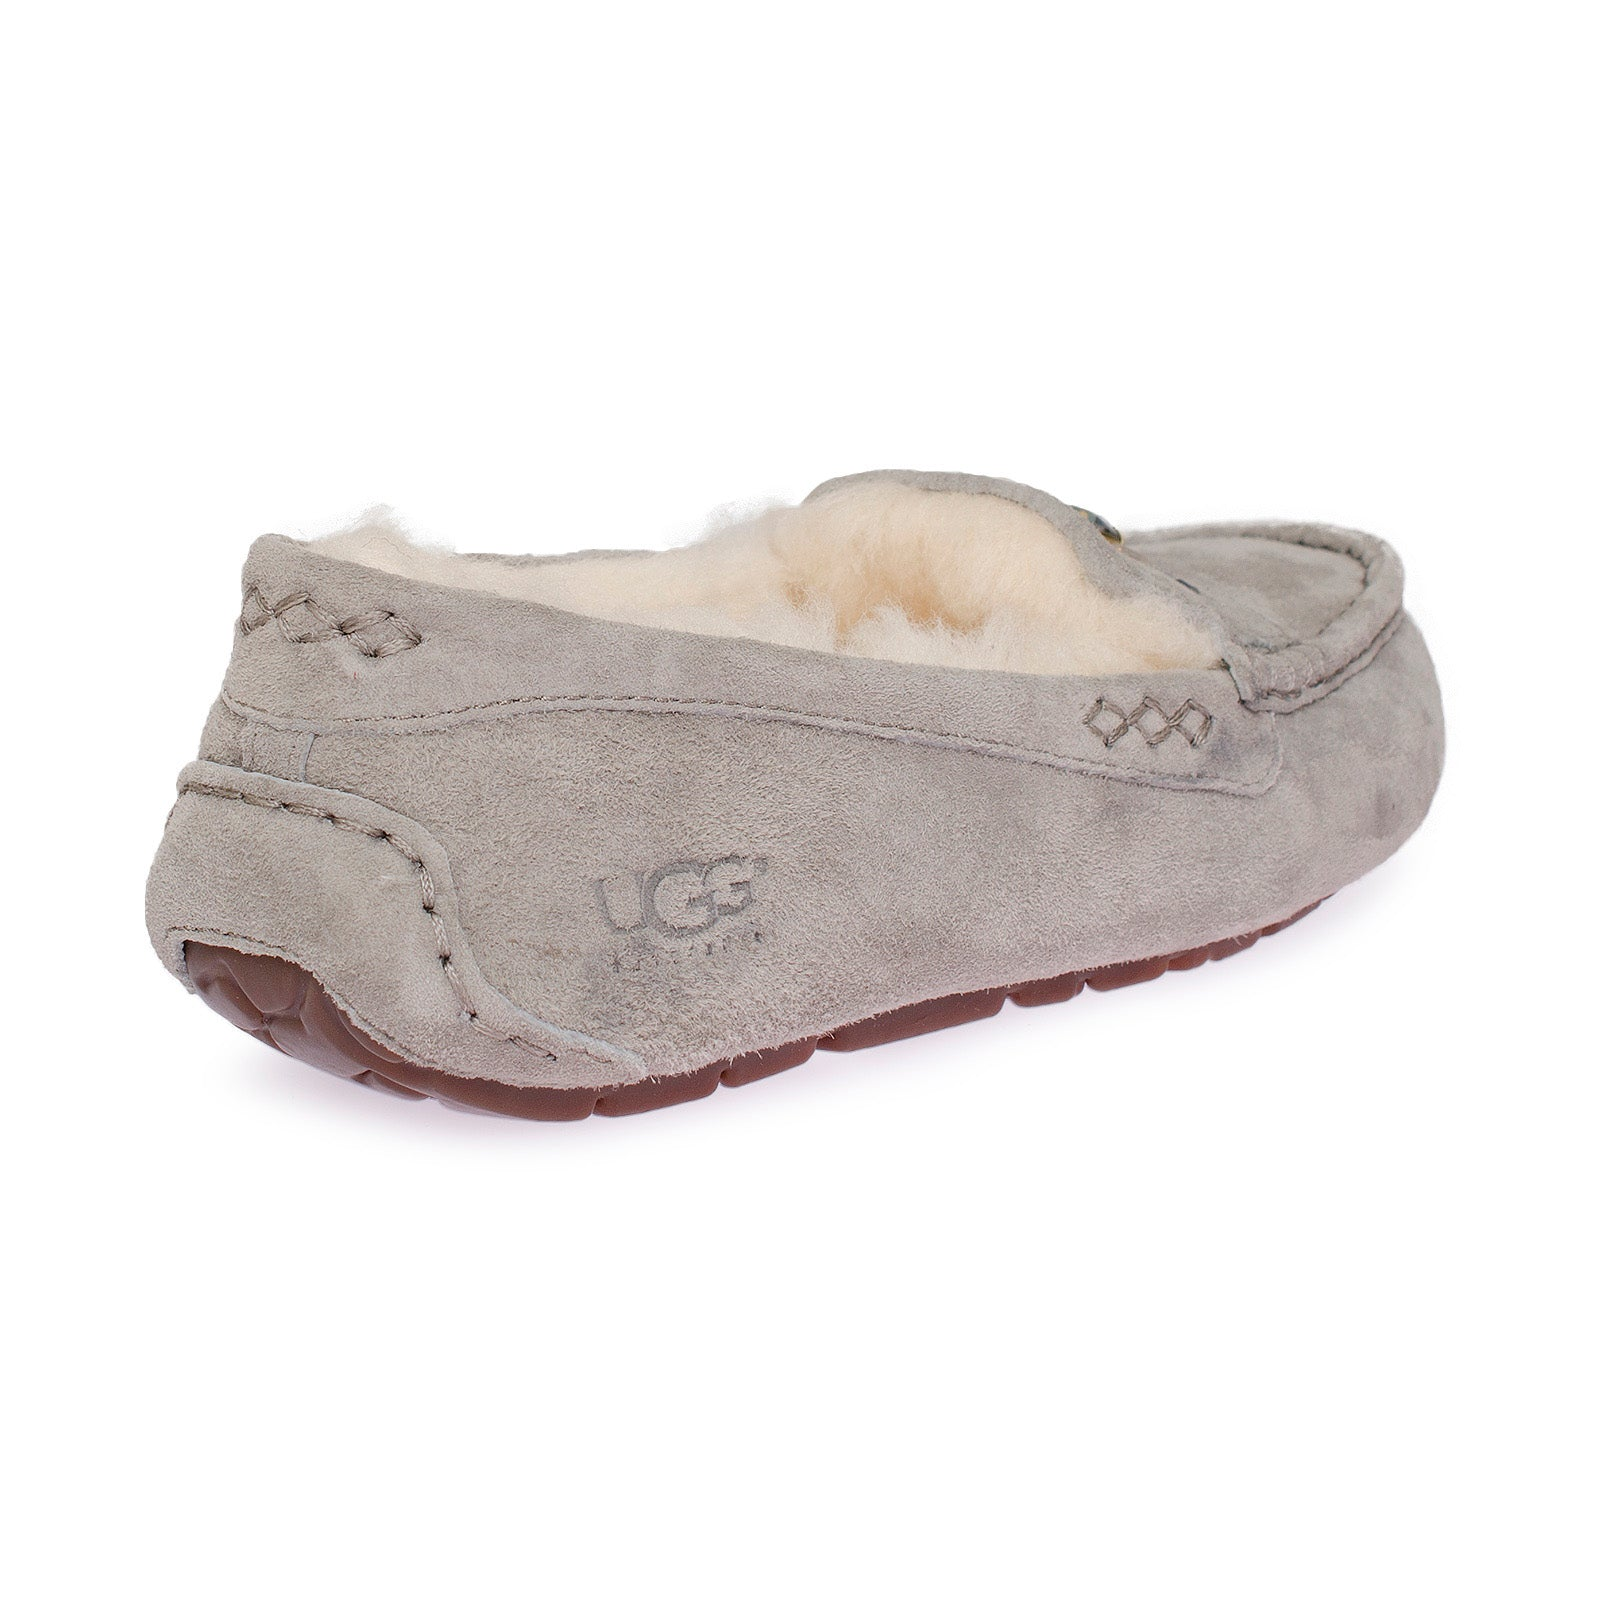 ddfd5c98be2 Women's Slippers Tagged